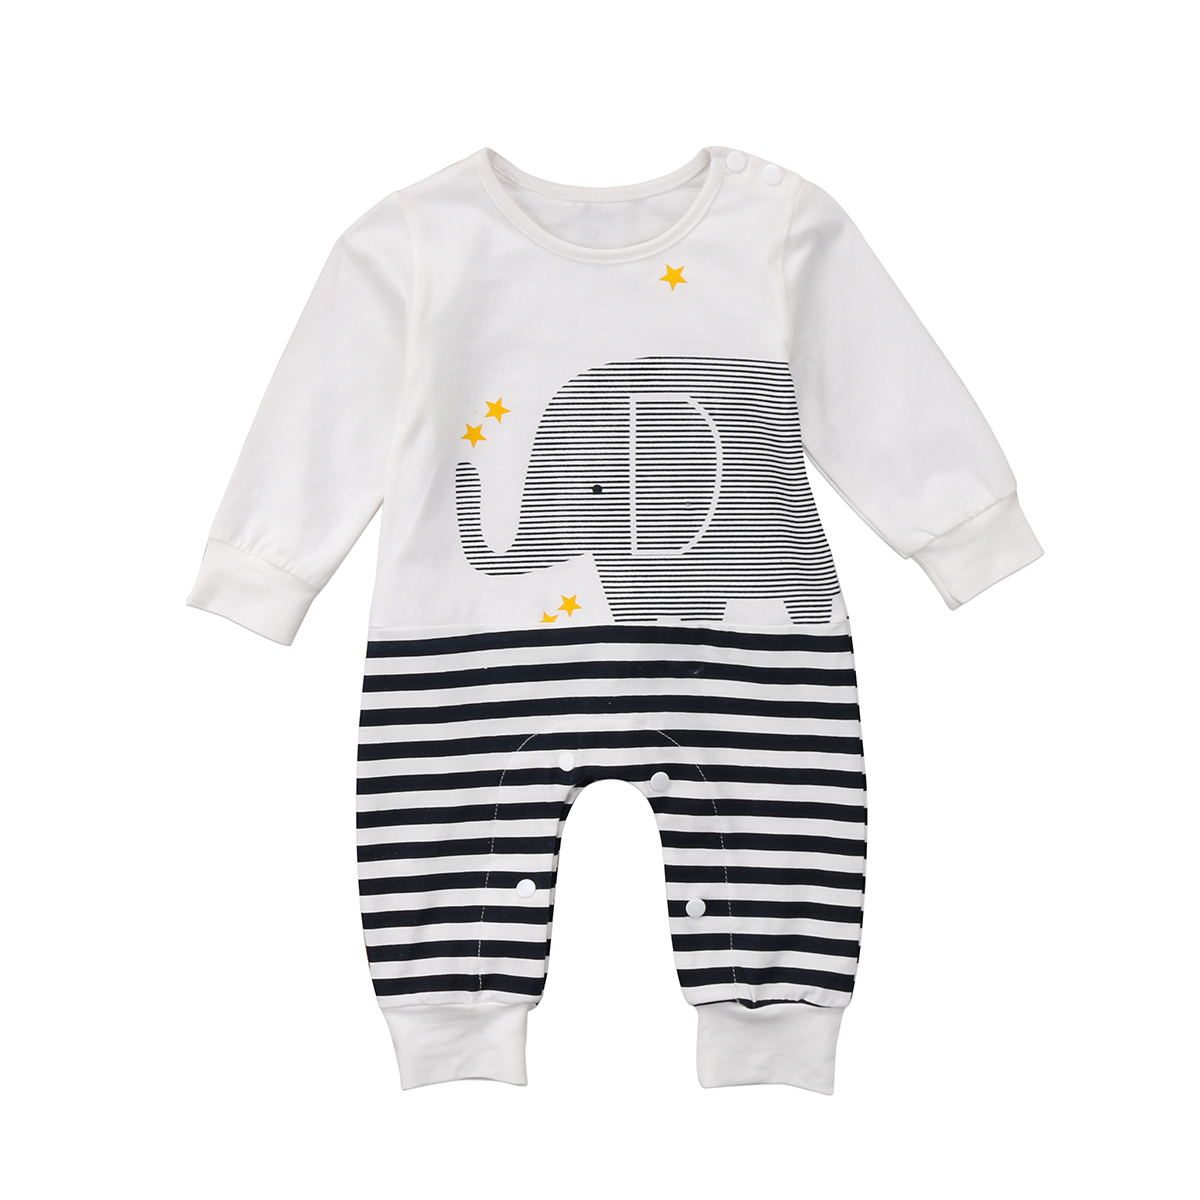 f42d9591ae49 White Elephant Striped Cotton Adorable Kids Baby Girls Boys Romper Jumpsuit  Outfits Playsuit Clothes